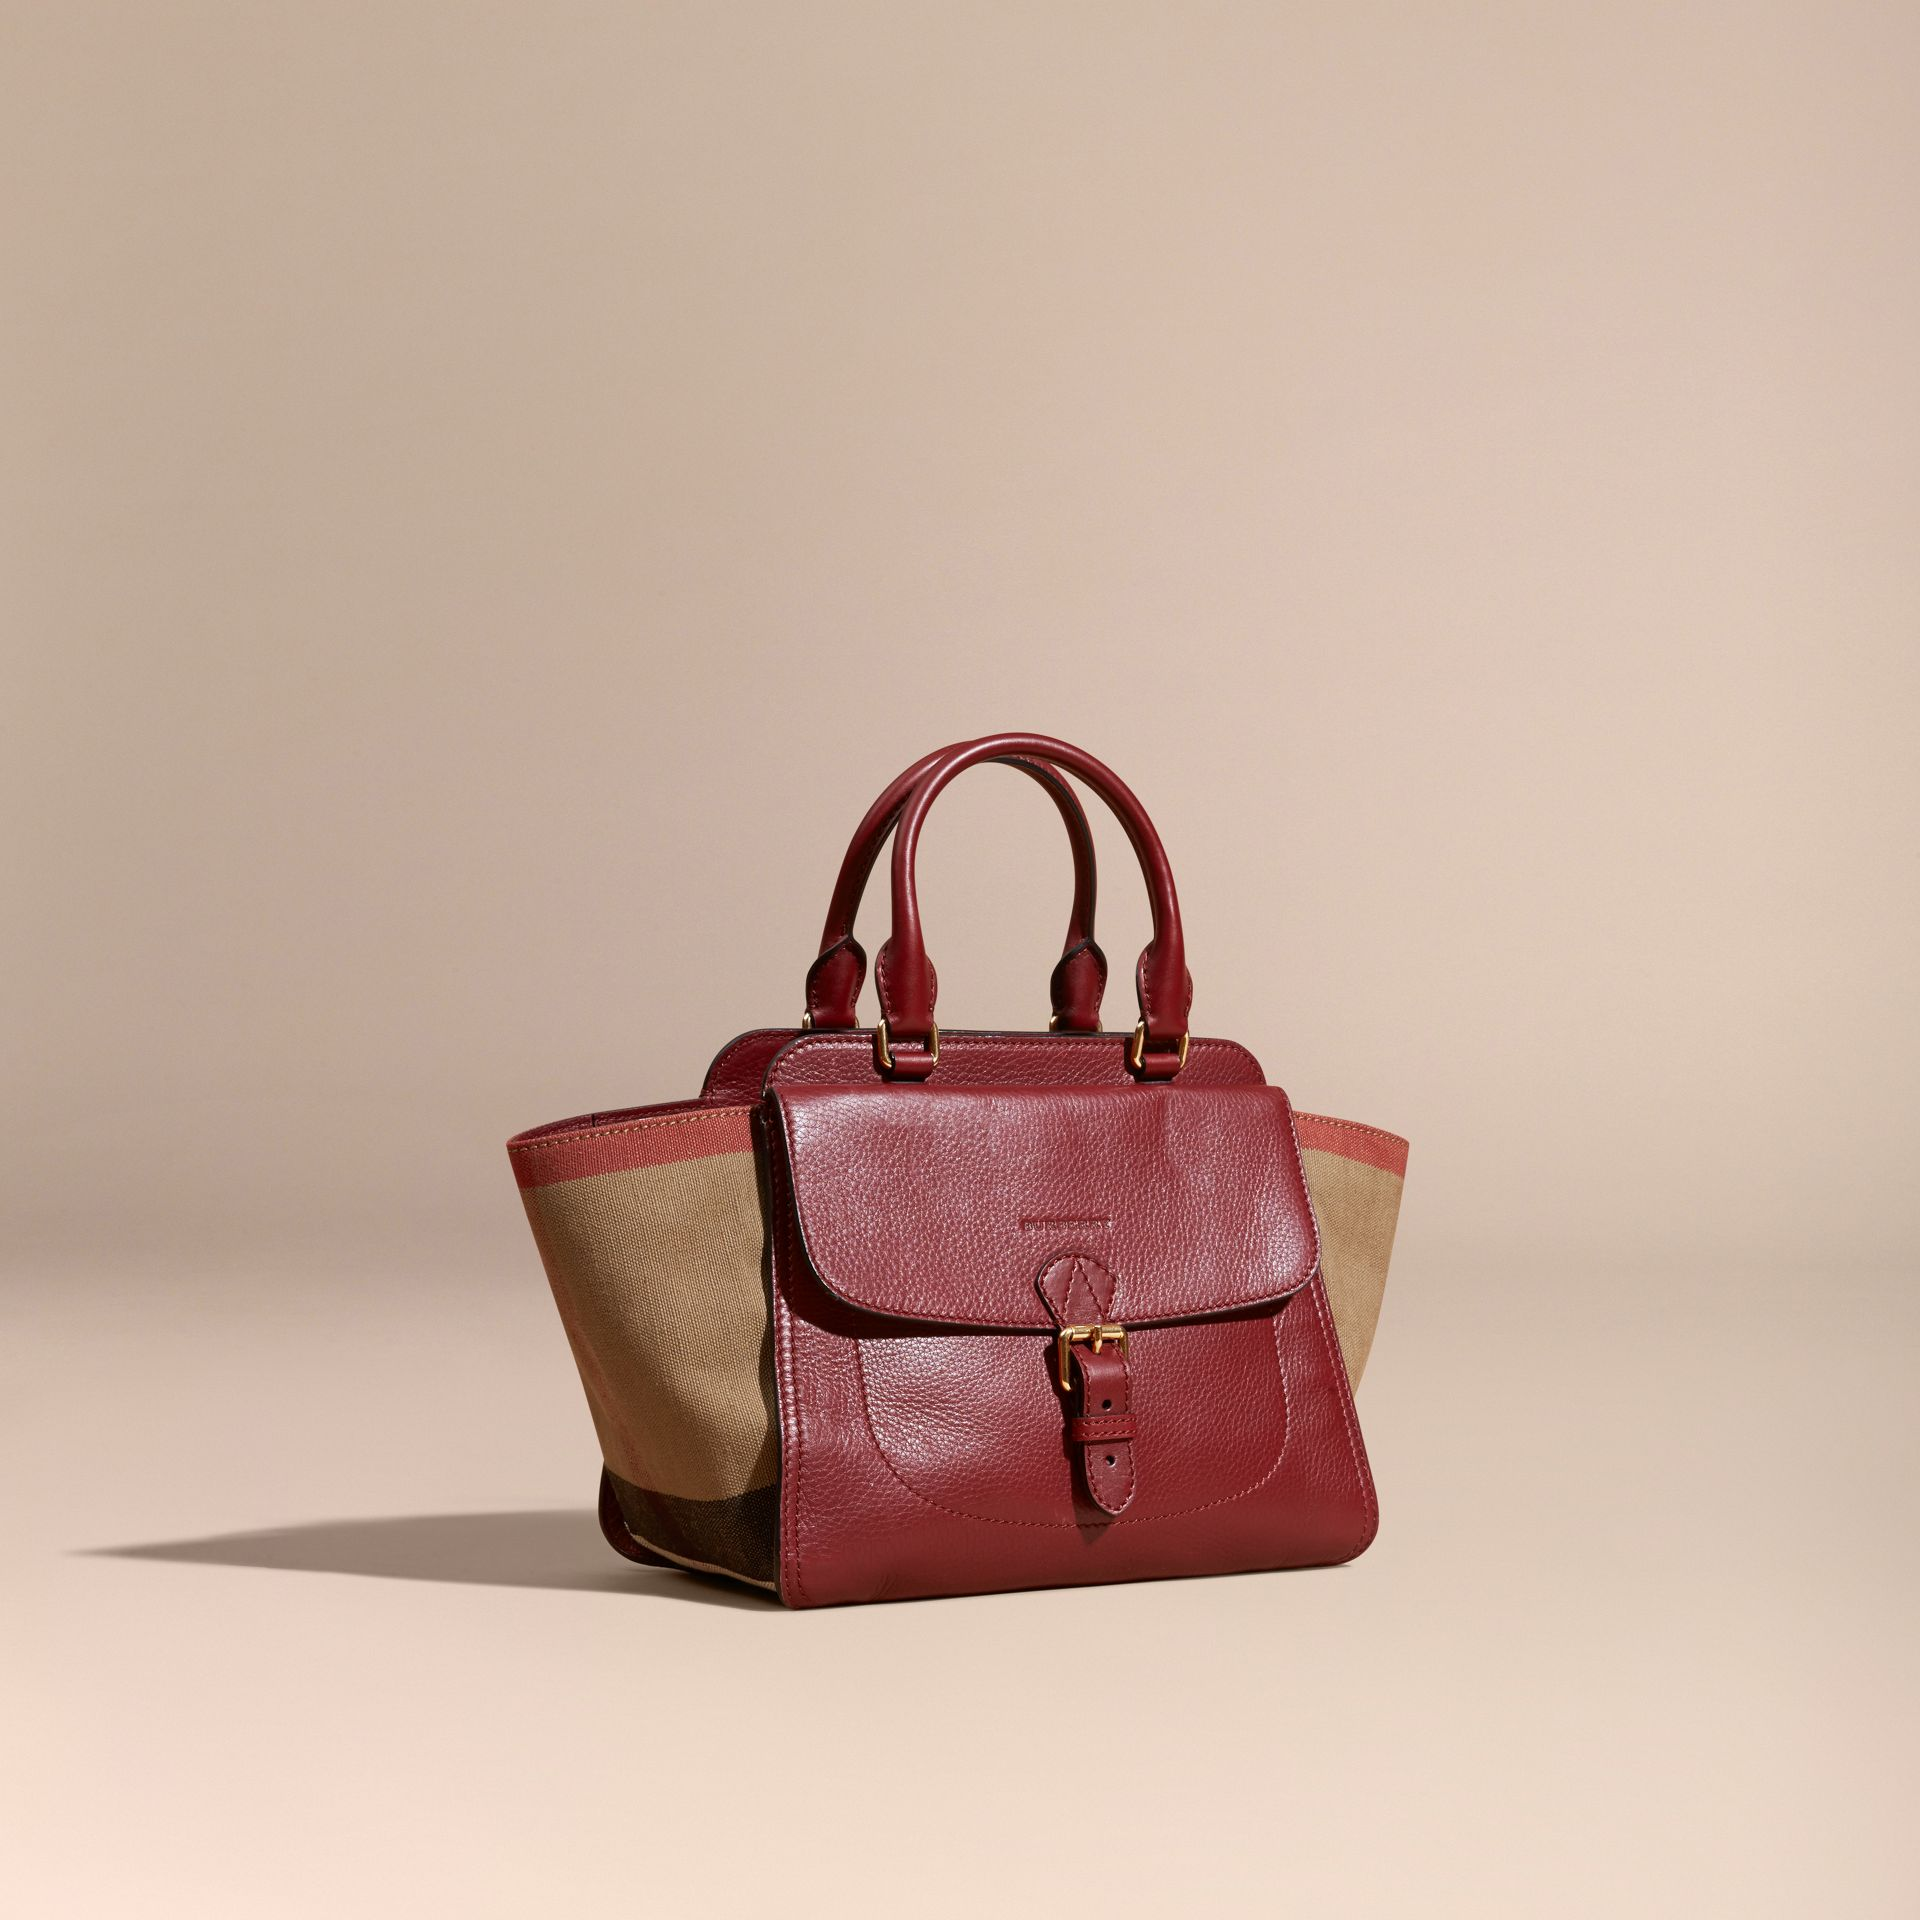 Burgundy red Medium Canvas Check and Leather Tote Bag Burgundy Red - gallery image 1